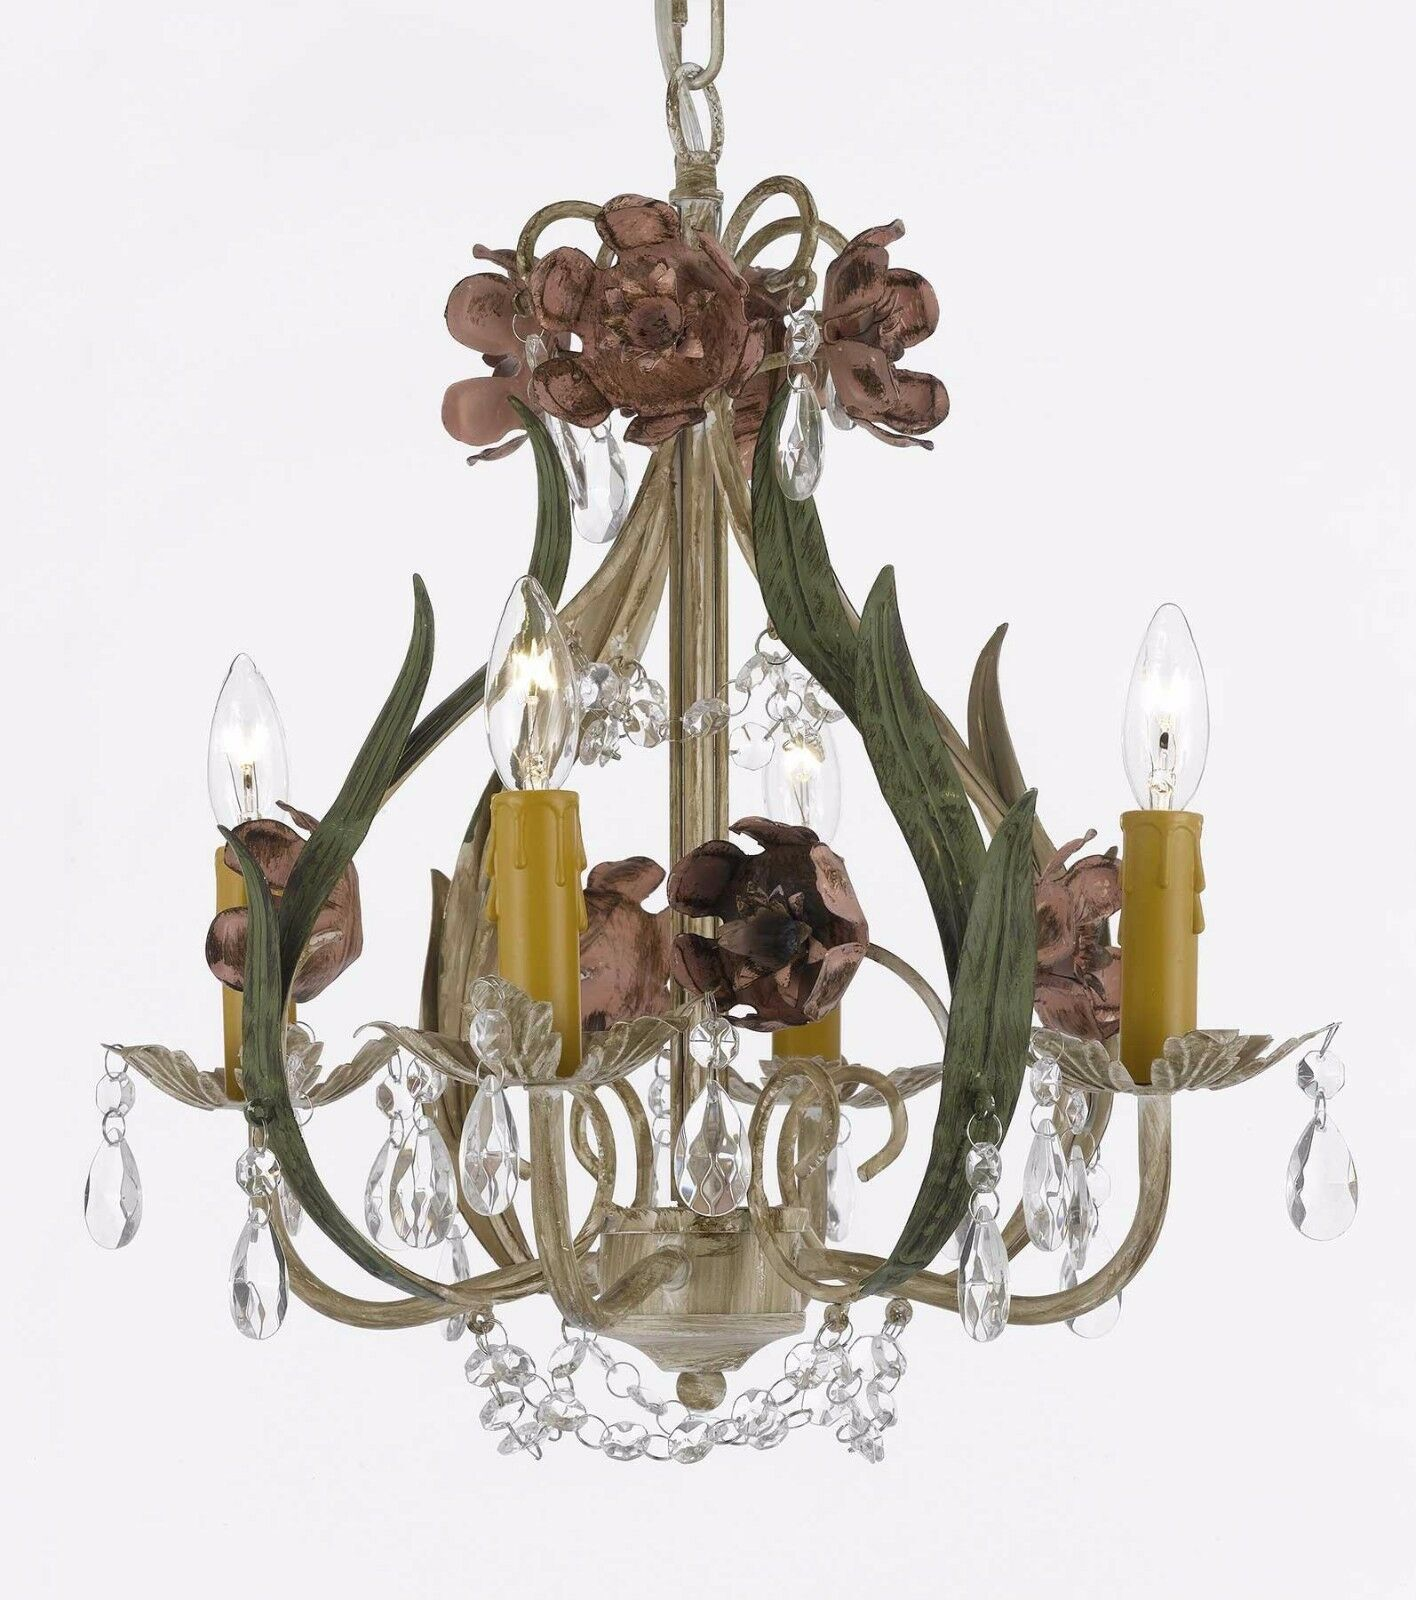 Floral wrought iron and crystal 4 light chandelier pendant lighting picture 1 of 1 aloadofball Images